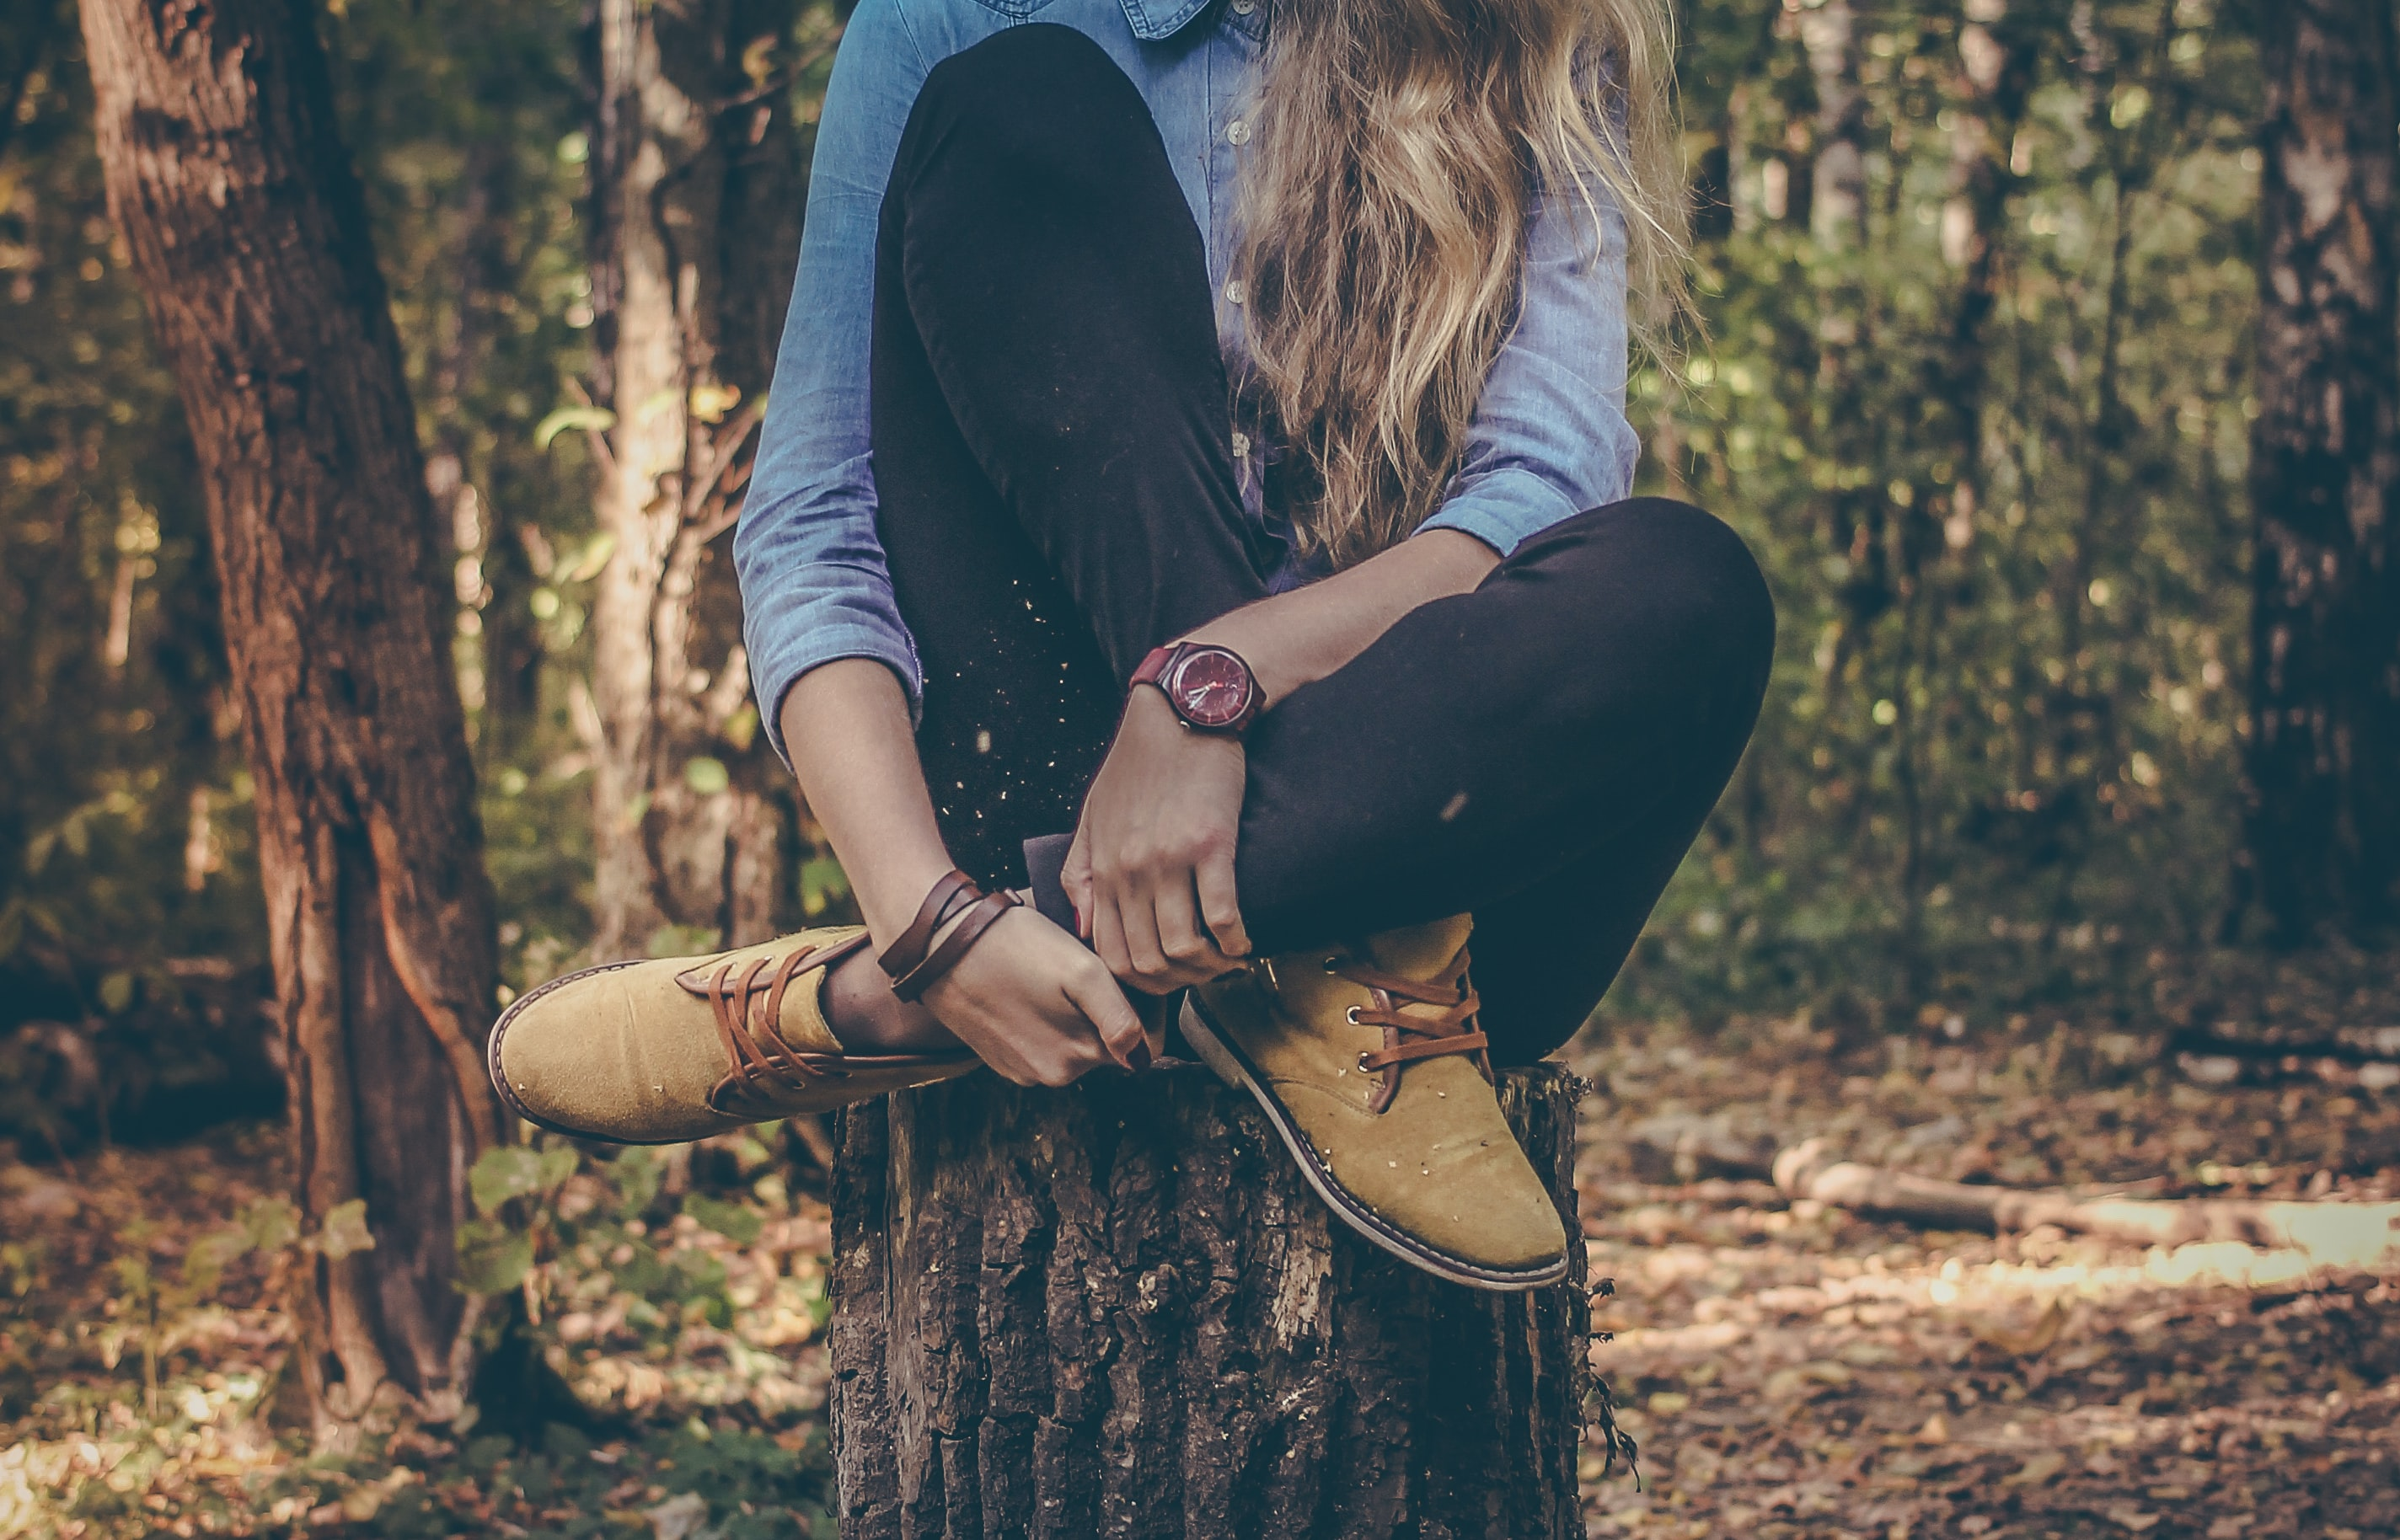 Woman wearing watch sitting on tree stump in the forest wearing boots